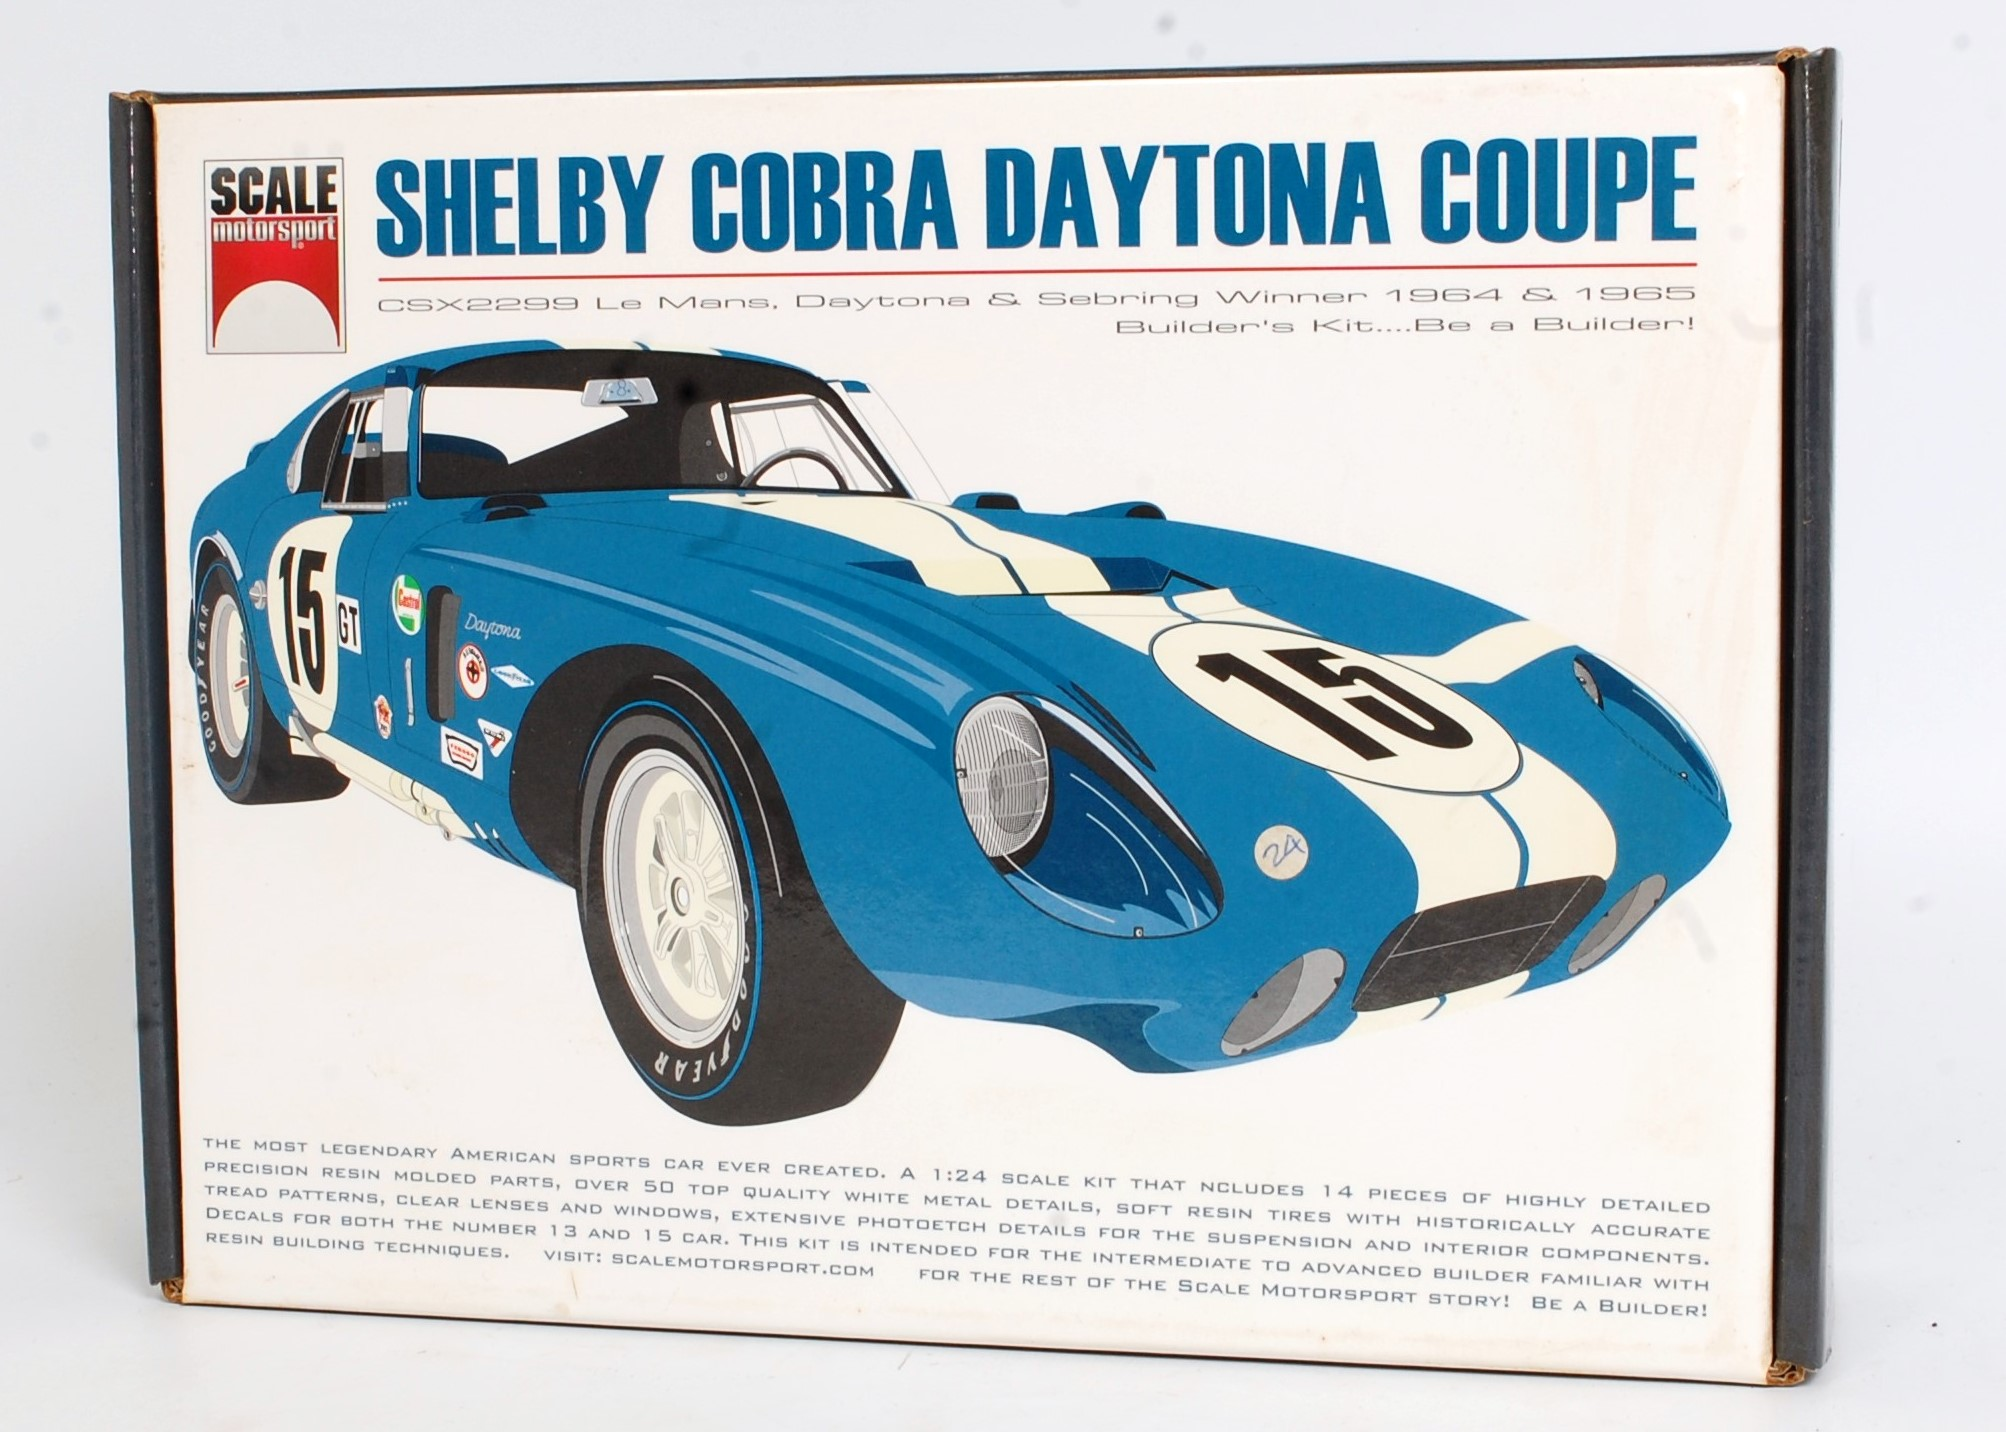 A Scale Motor Sport 1/24 scale multi media kit for a Shelby Cobra Daytona Coupe, appears as issued